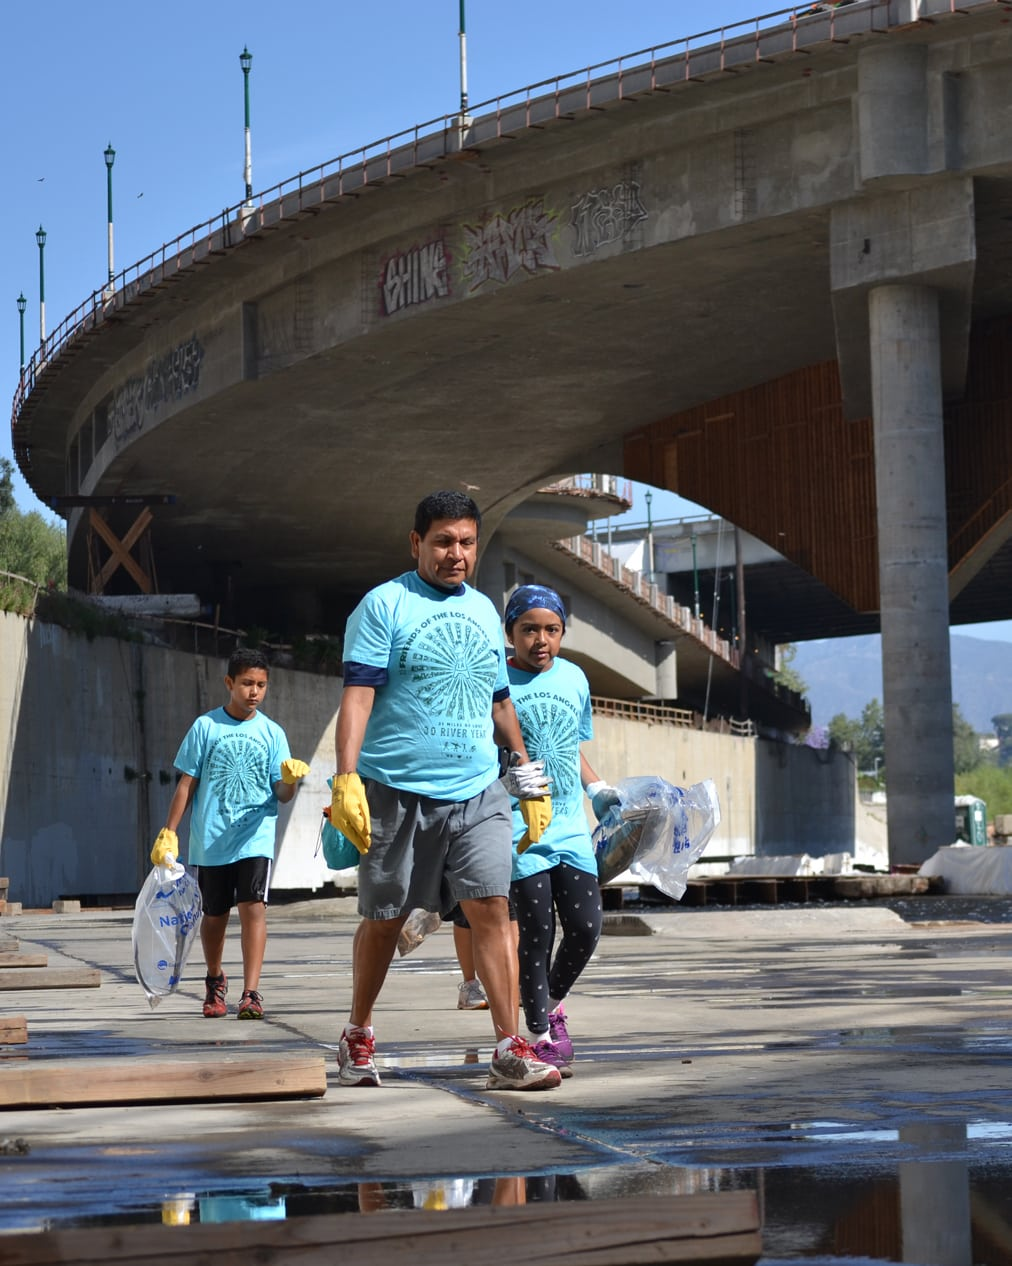 The 29th Annual Great Los Angeles River CleanUp